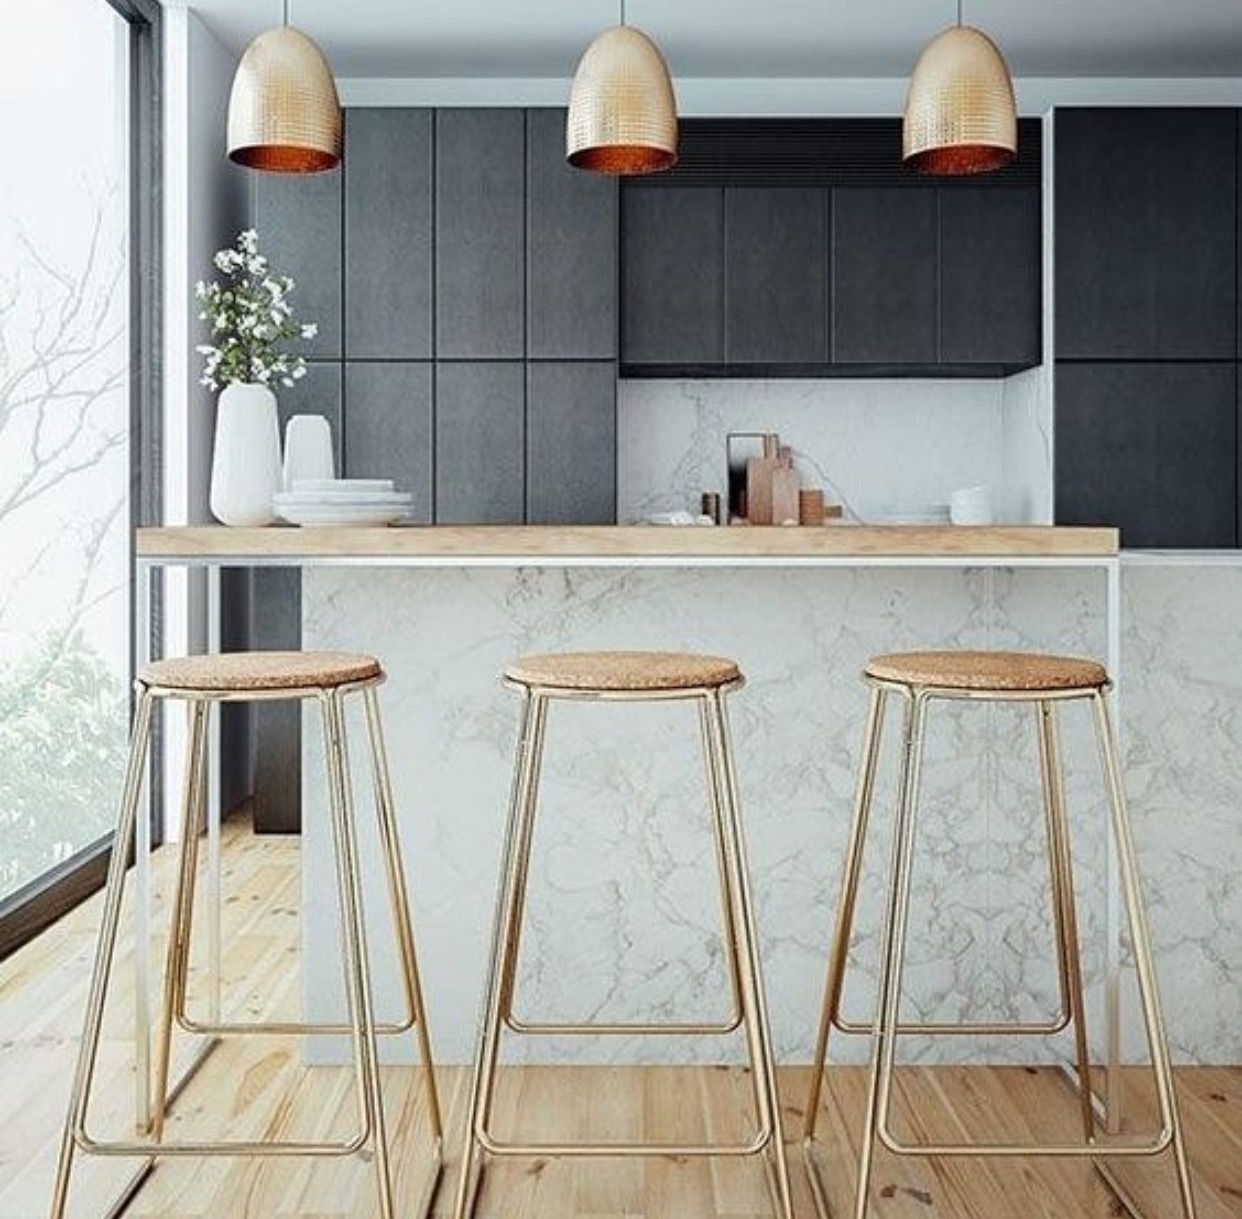 Pin by caitlin s on Home Decor   Pinterest   Modern and Kitchens